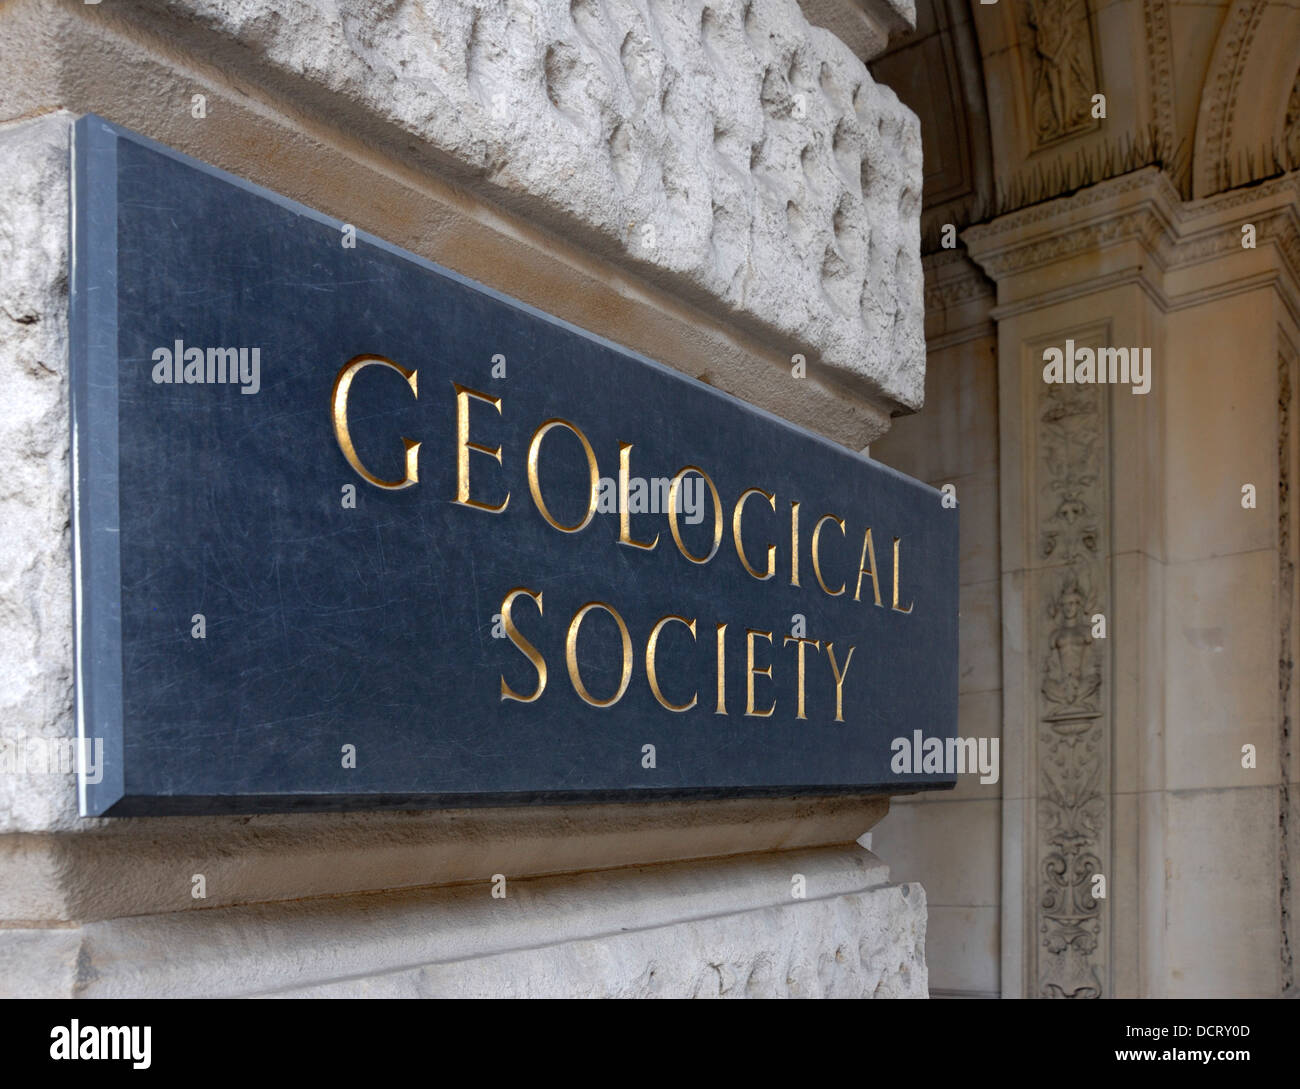 London, England, UK. Burlington House on Piccadilly. The Geological Society - name plaque - Stock Image